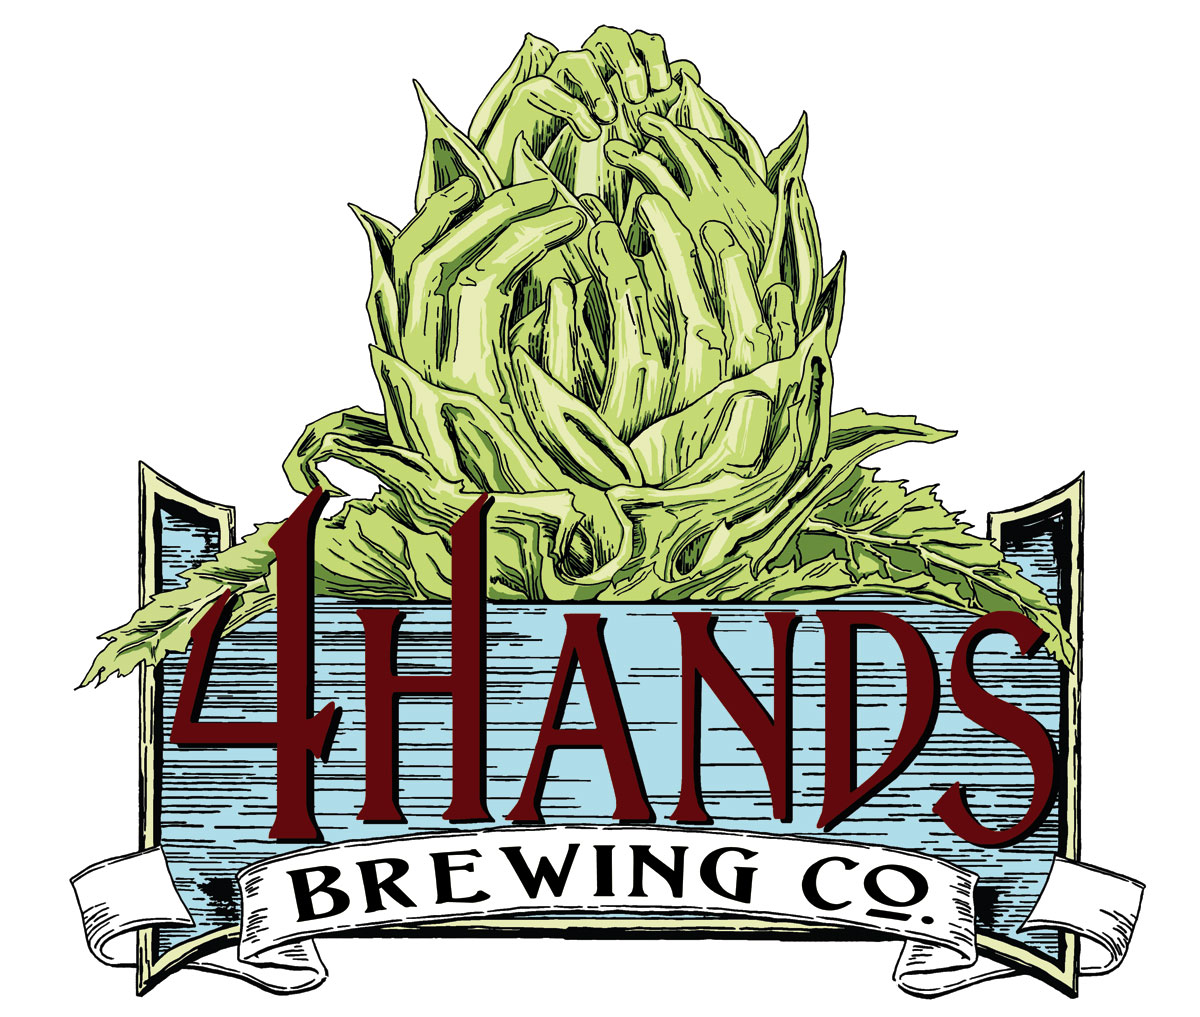 4 Hands Brewing Company